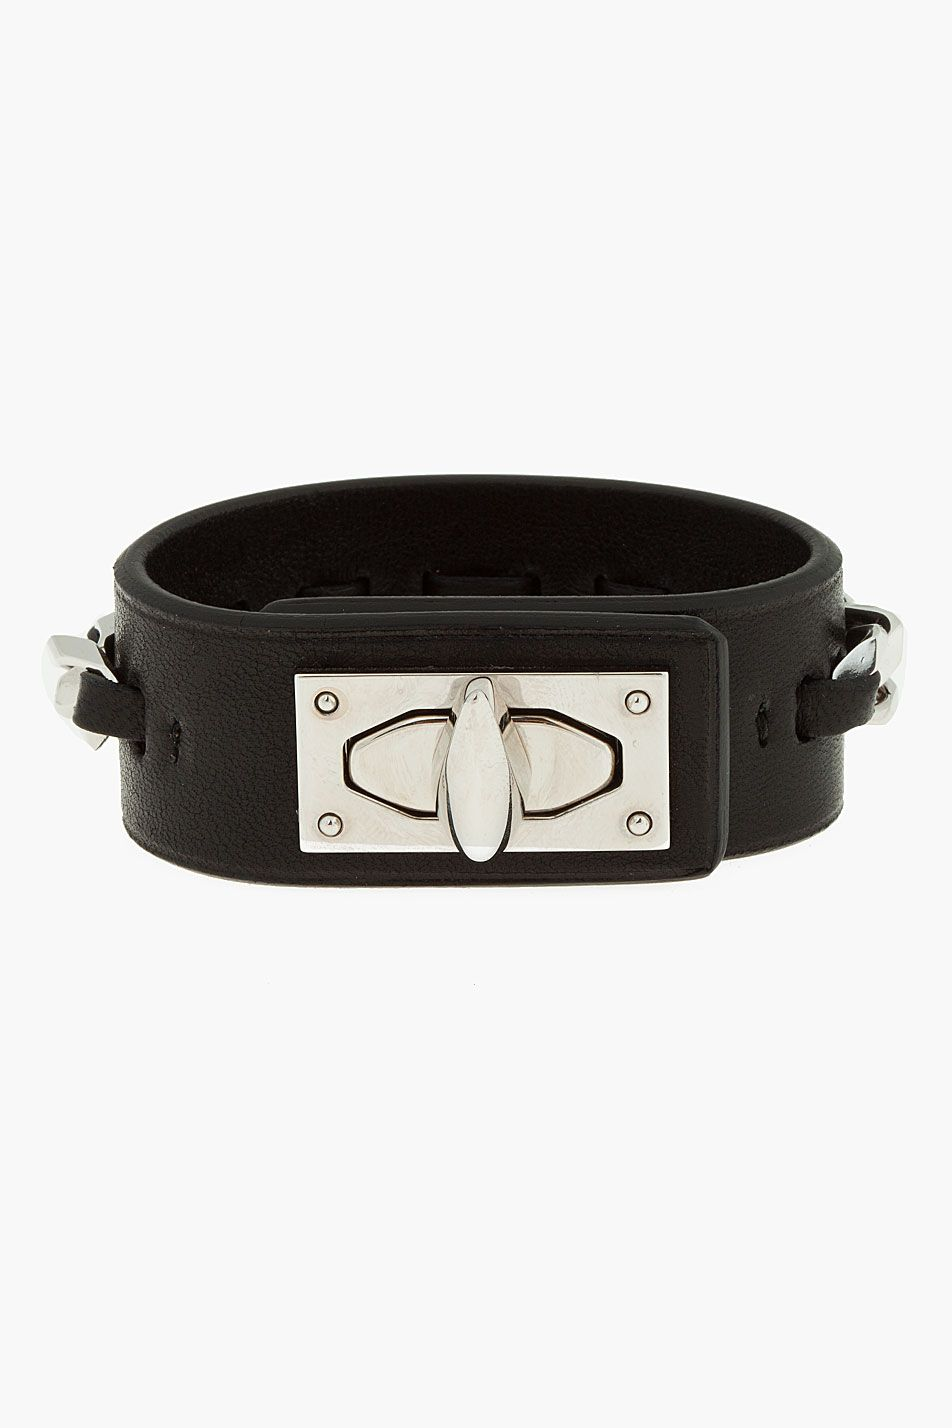 Givenchy Black Leather Sharktooth Chain Bracelet  Givenchy Black Leather  Sharktooth Chain Bracelet Givenchy Leather Bracelet